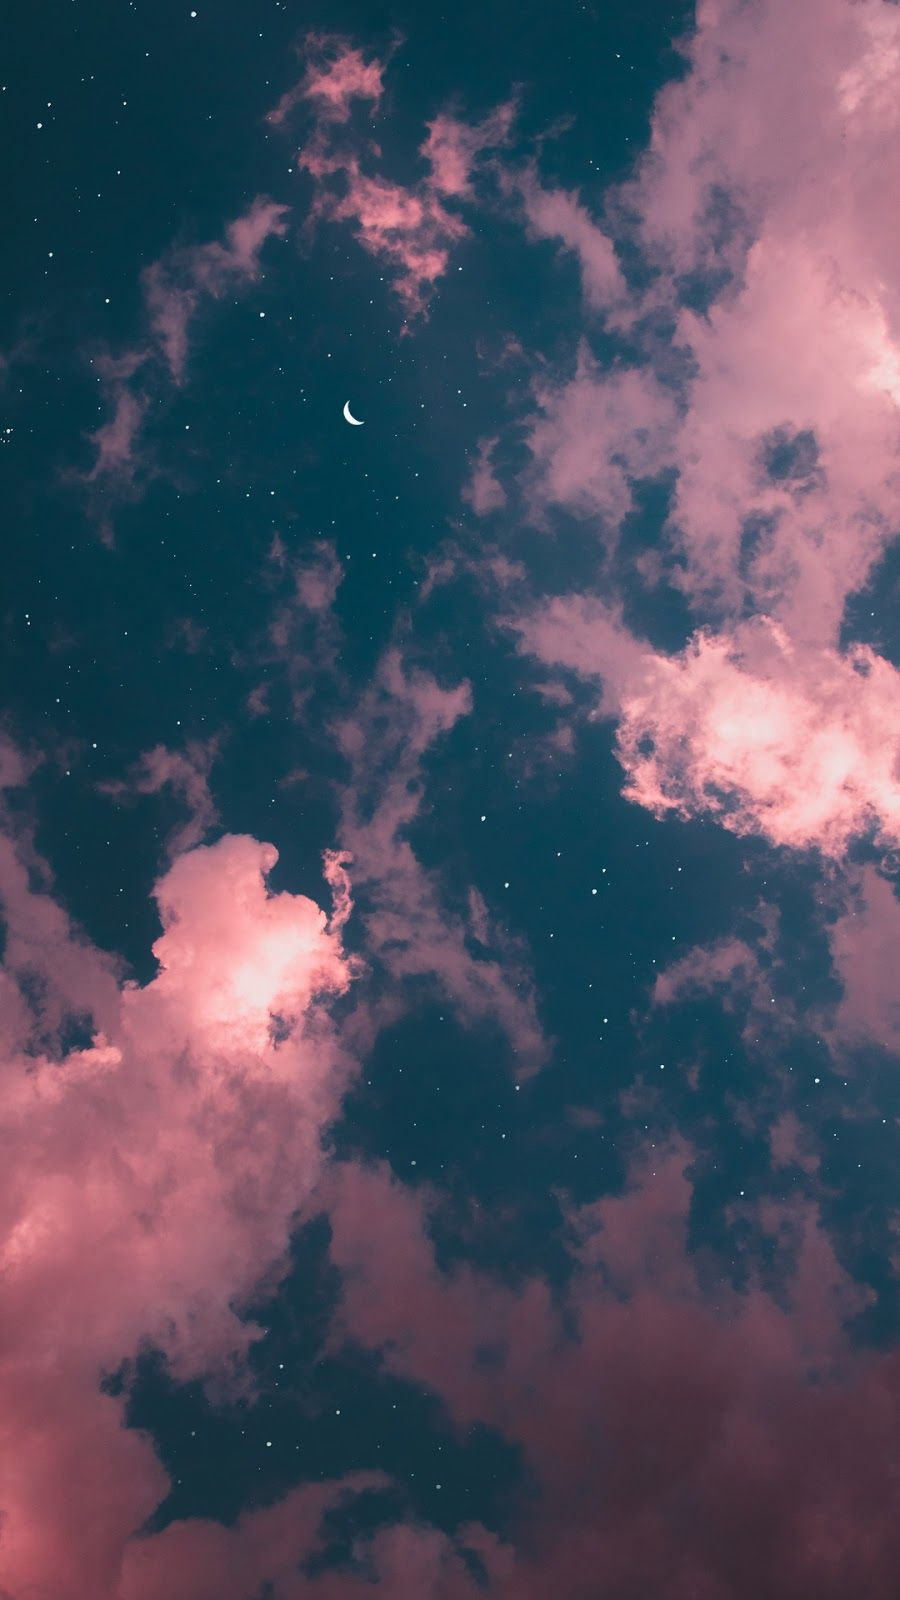 Night Sky With Images Night Sky Wallpaper Cloud Wallpaper